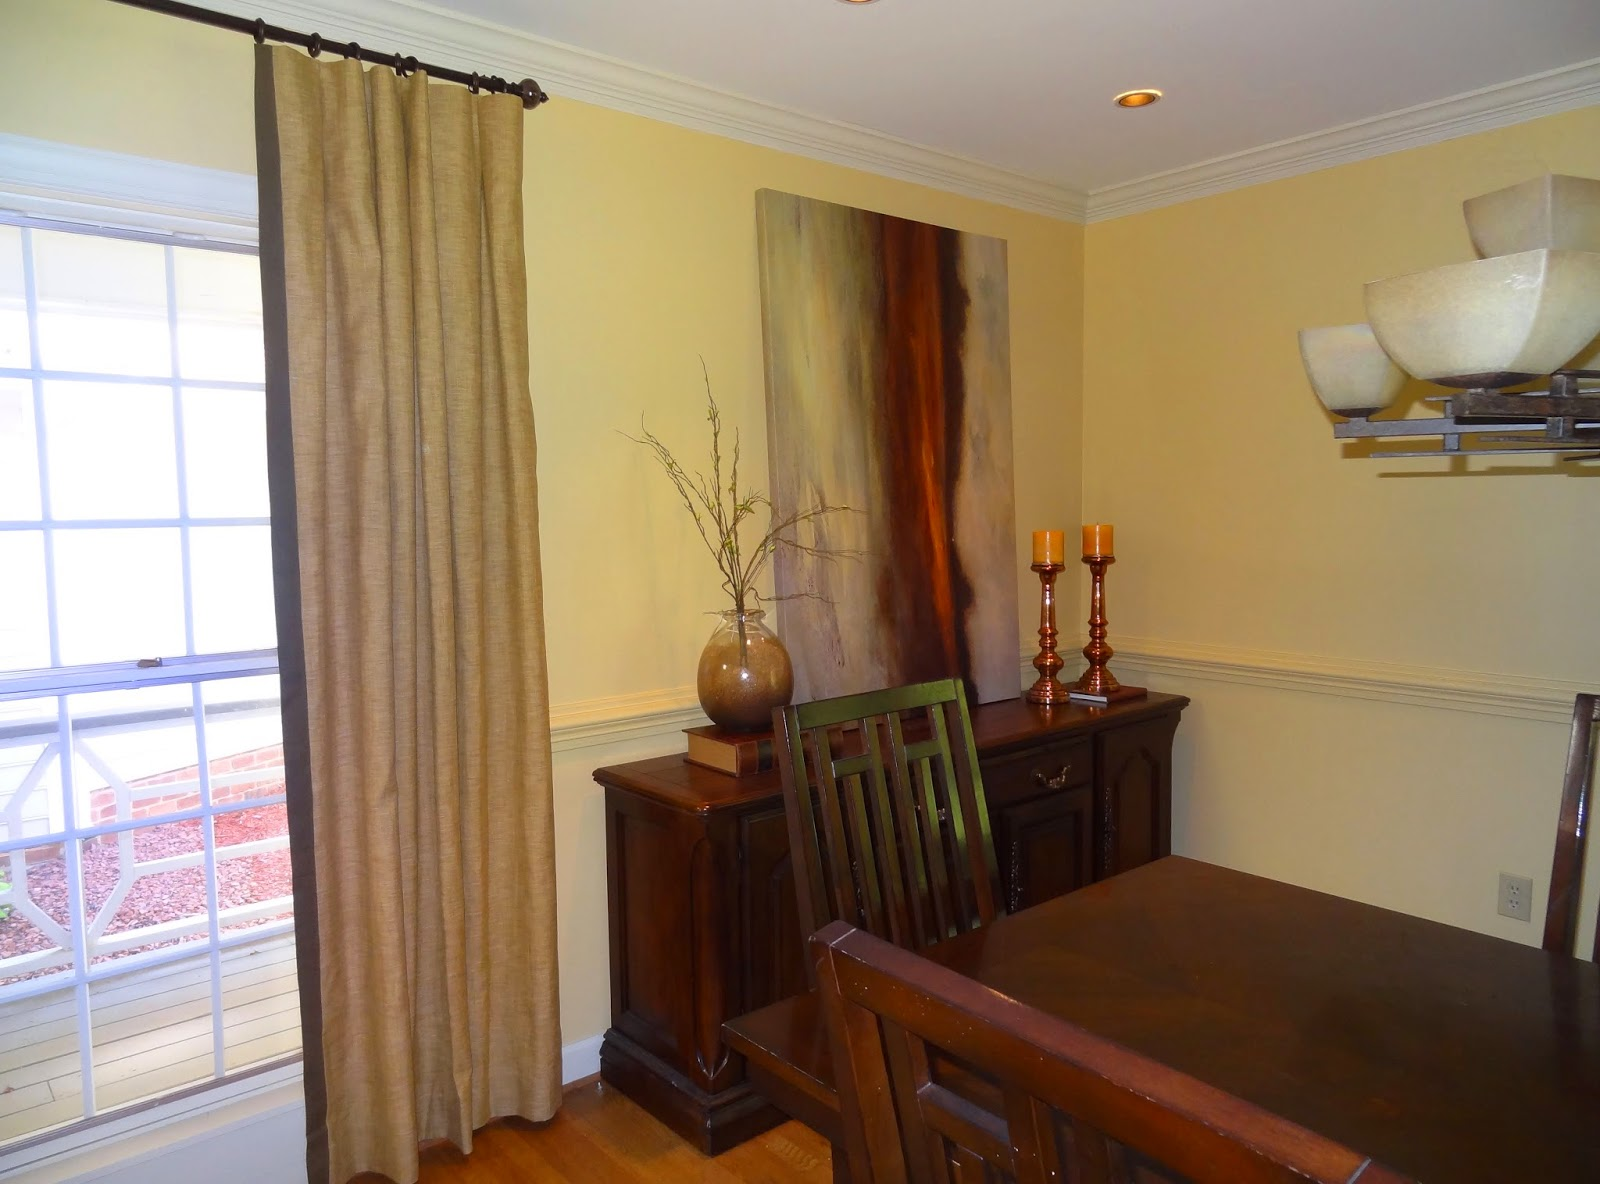 Chair Rail Pros And Cons Leather Club Ottoman Set How To Make A Dining Room Look Bigger Small